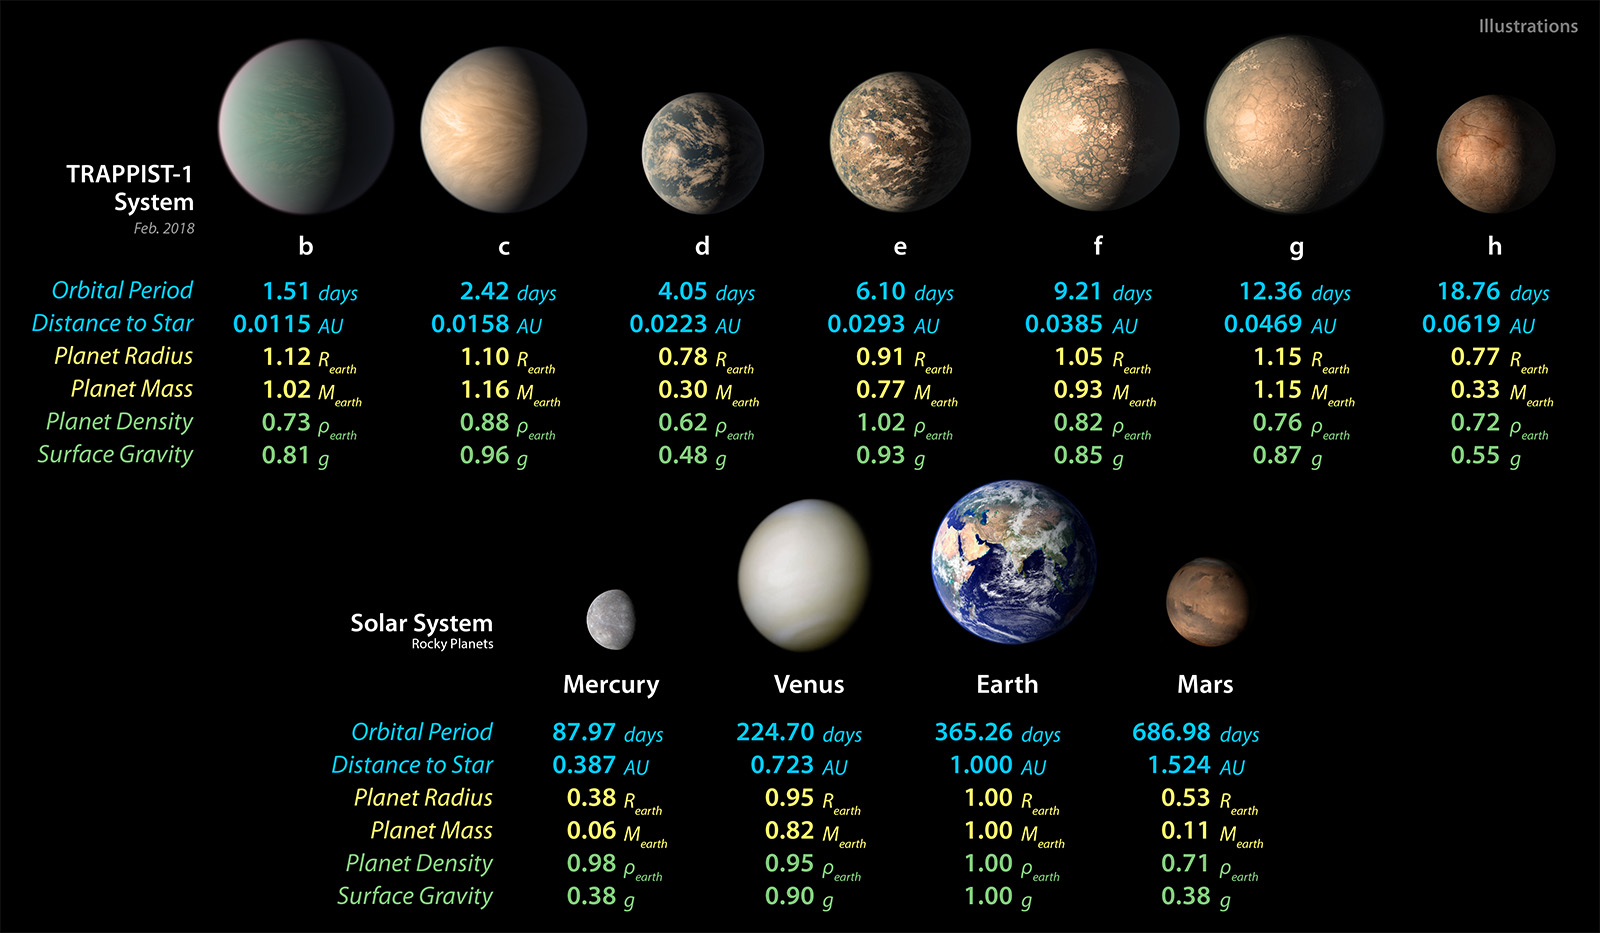 TRAPPIST-1 sizes